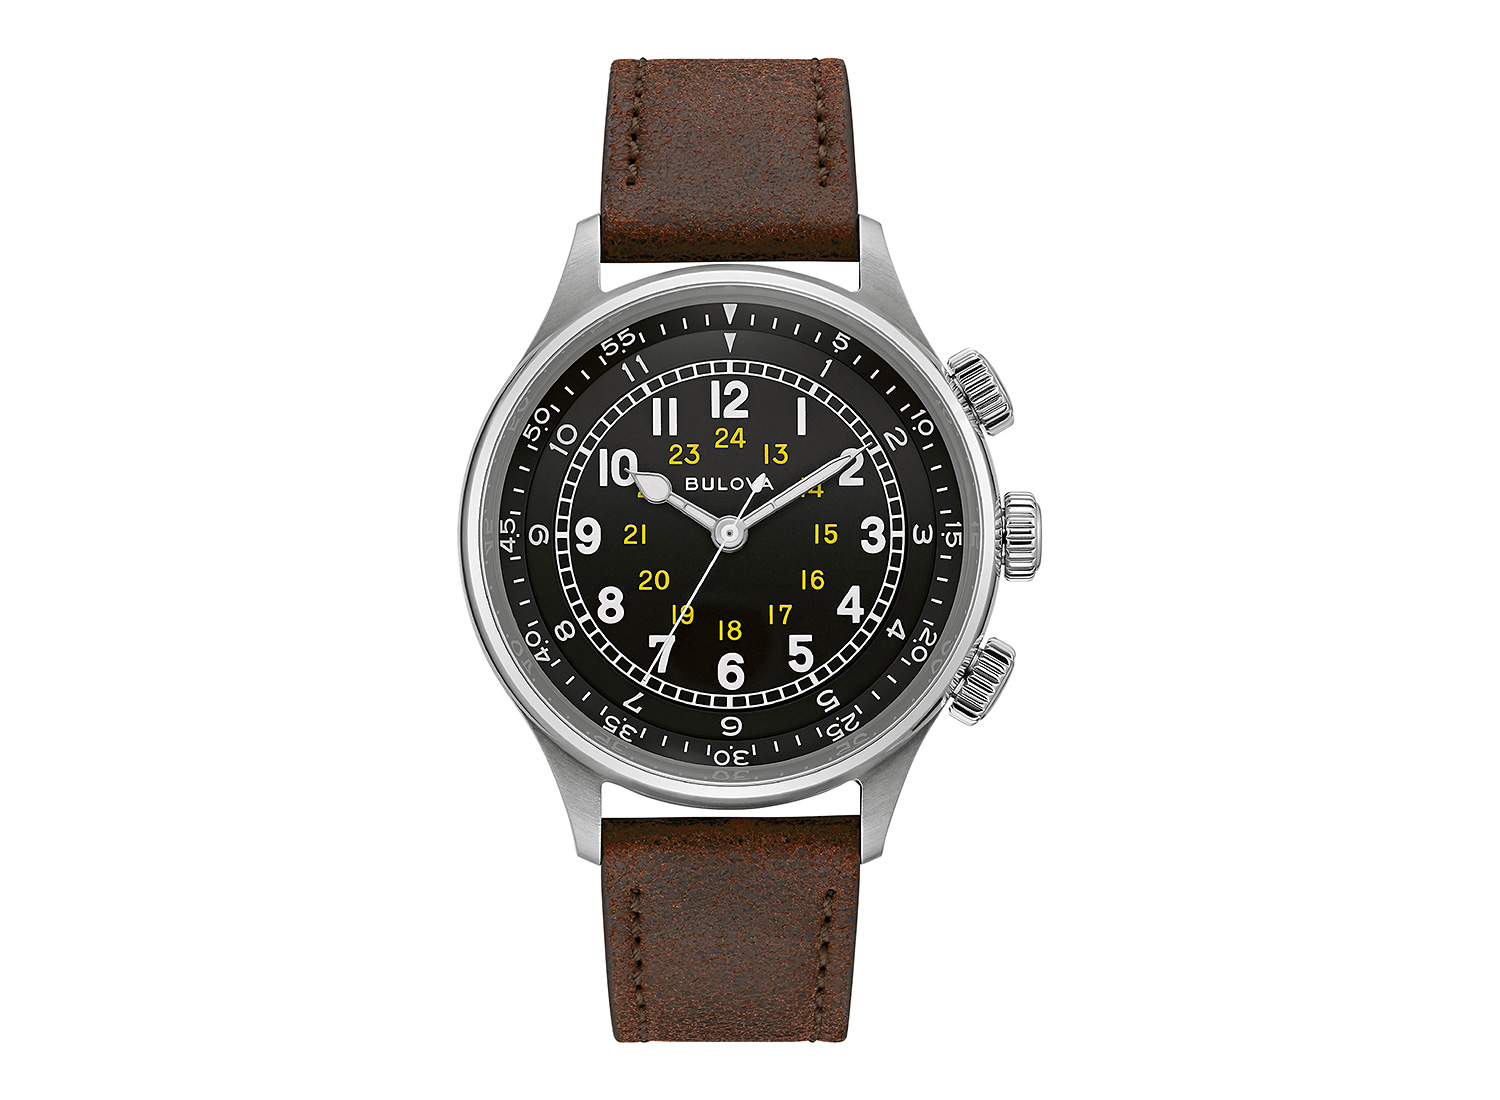 Bulova A15 Pilot Watch Revives A WWII Classic at werd.com